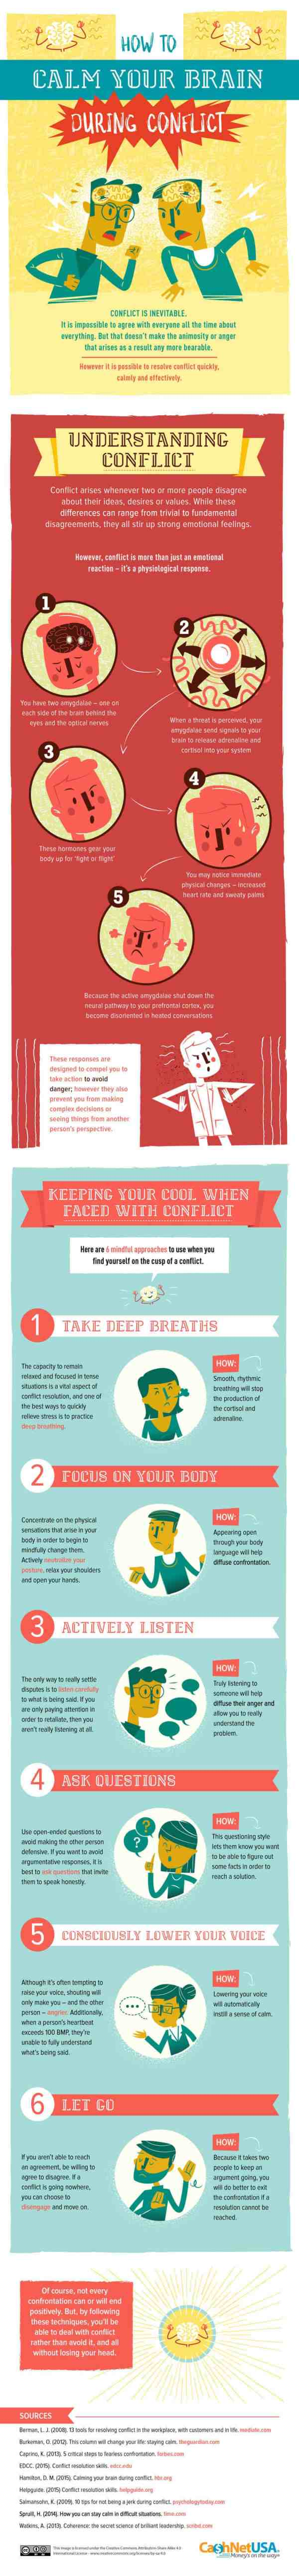 how-to-calm-brain-V2-1-optimized